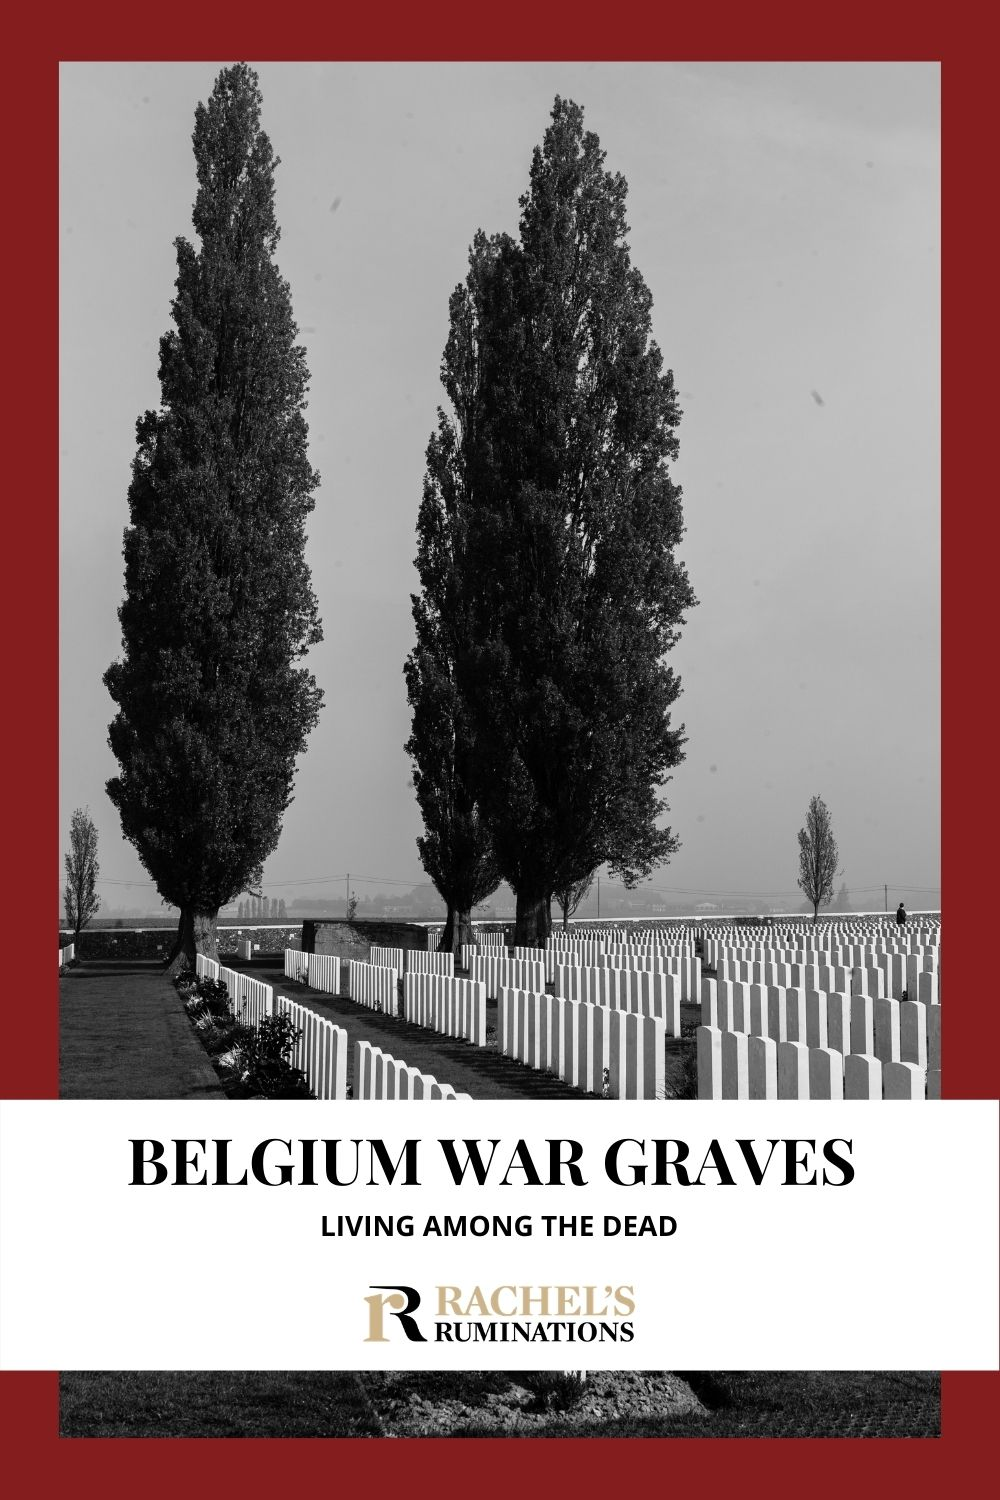 With so many Belgium war graves, memorials, monuments, trenches and museums in the Ypres Salient, it's as if the locals live among the dead. via @rachelsruminations